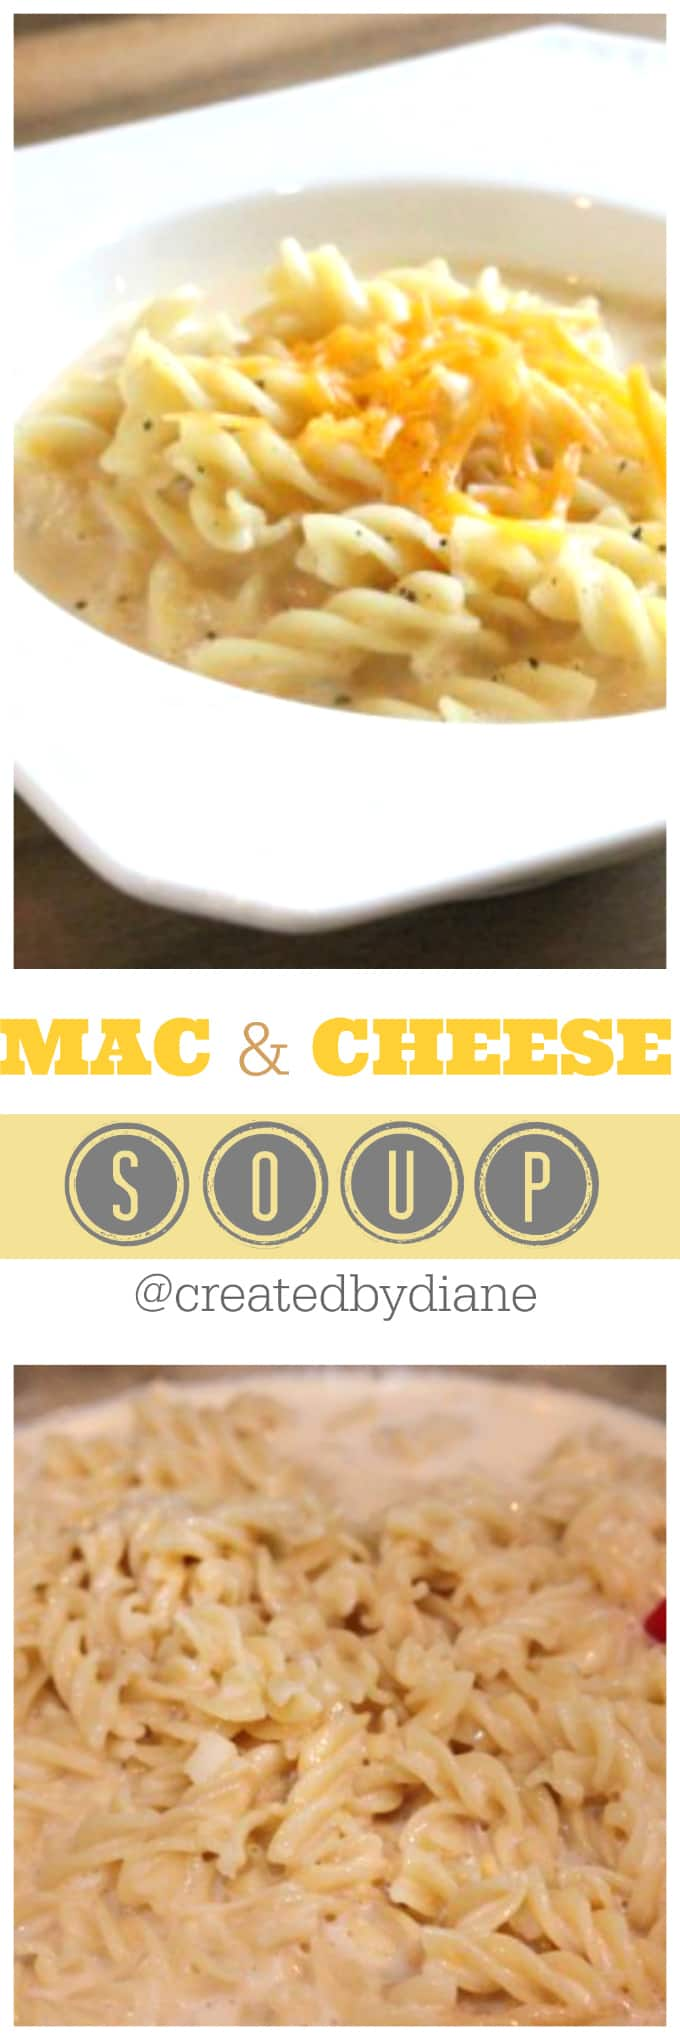 mac and cheese soup recipe @createdbydiane